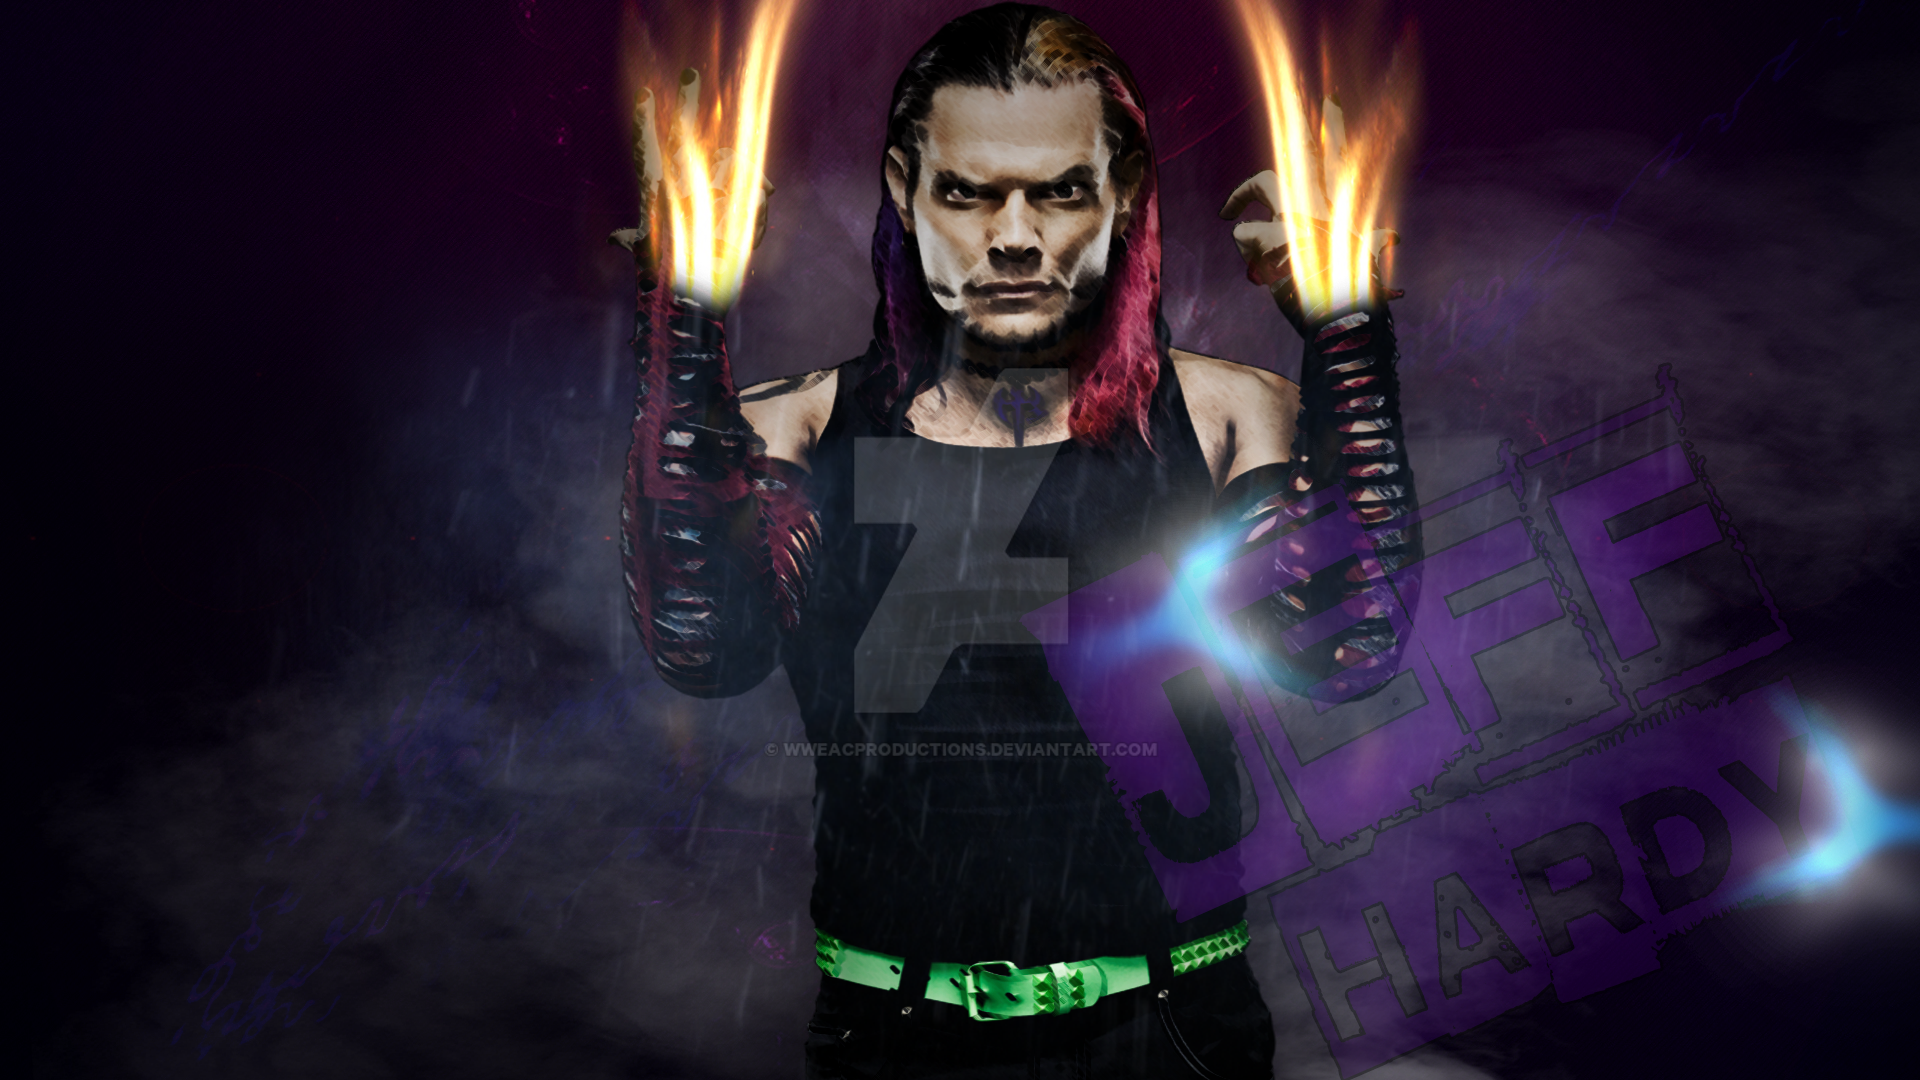 wwe custom jeff hardy wallpaper 2016wweacproductions on deviantart